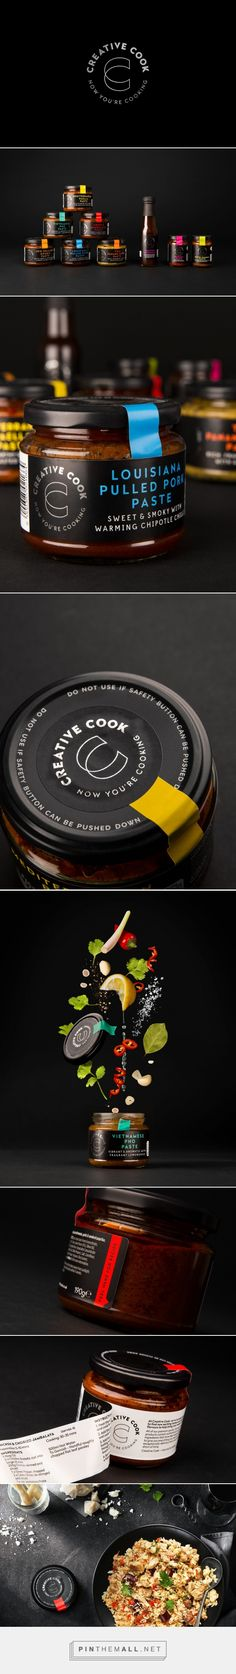 Creative Cook - Packaging of the World - Creative Package Design Gallery - http://www.packagingoftheworld.com/2017/04/creative-cook.html